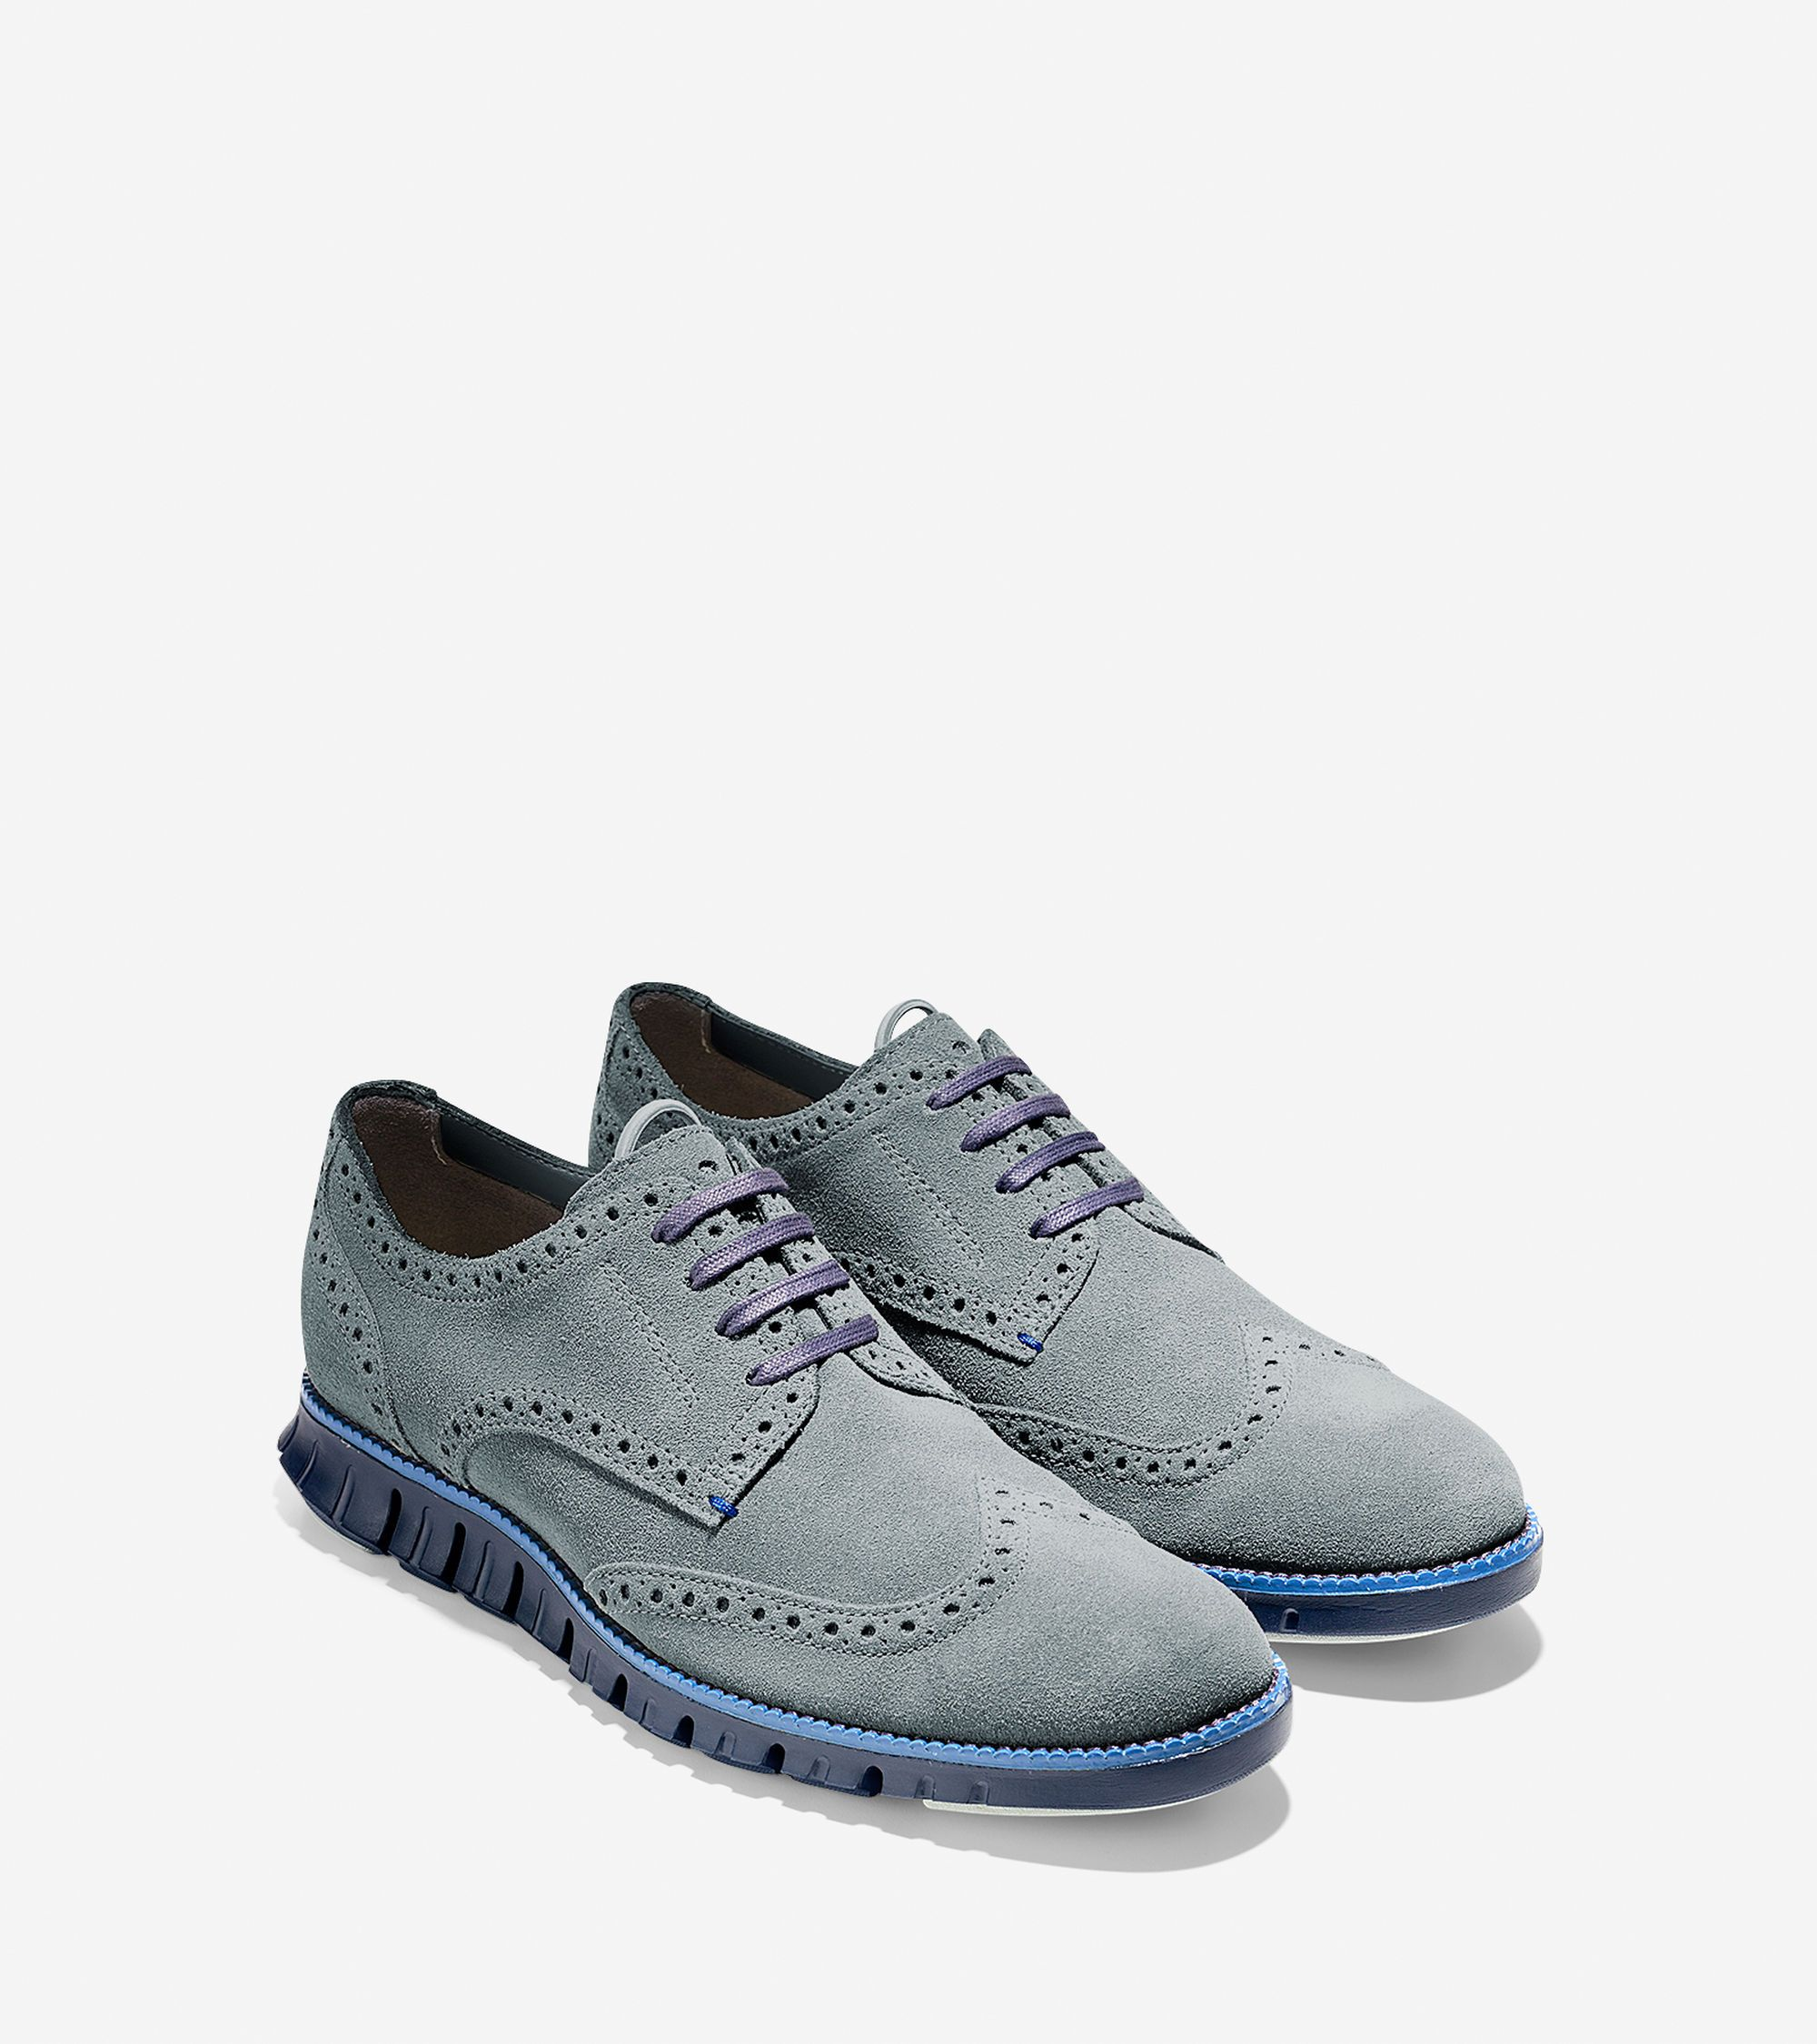 b9897d375ad ZERØGRAND Deconstructed Wingtip | Zapatos | Oxford shoes, Shoes ...